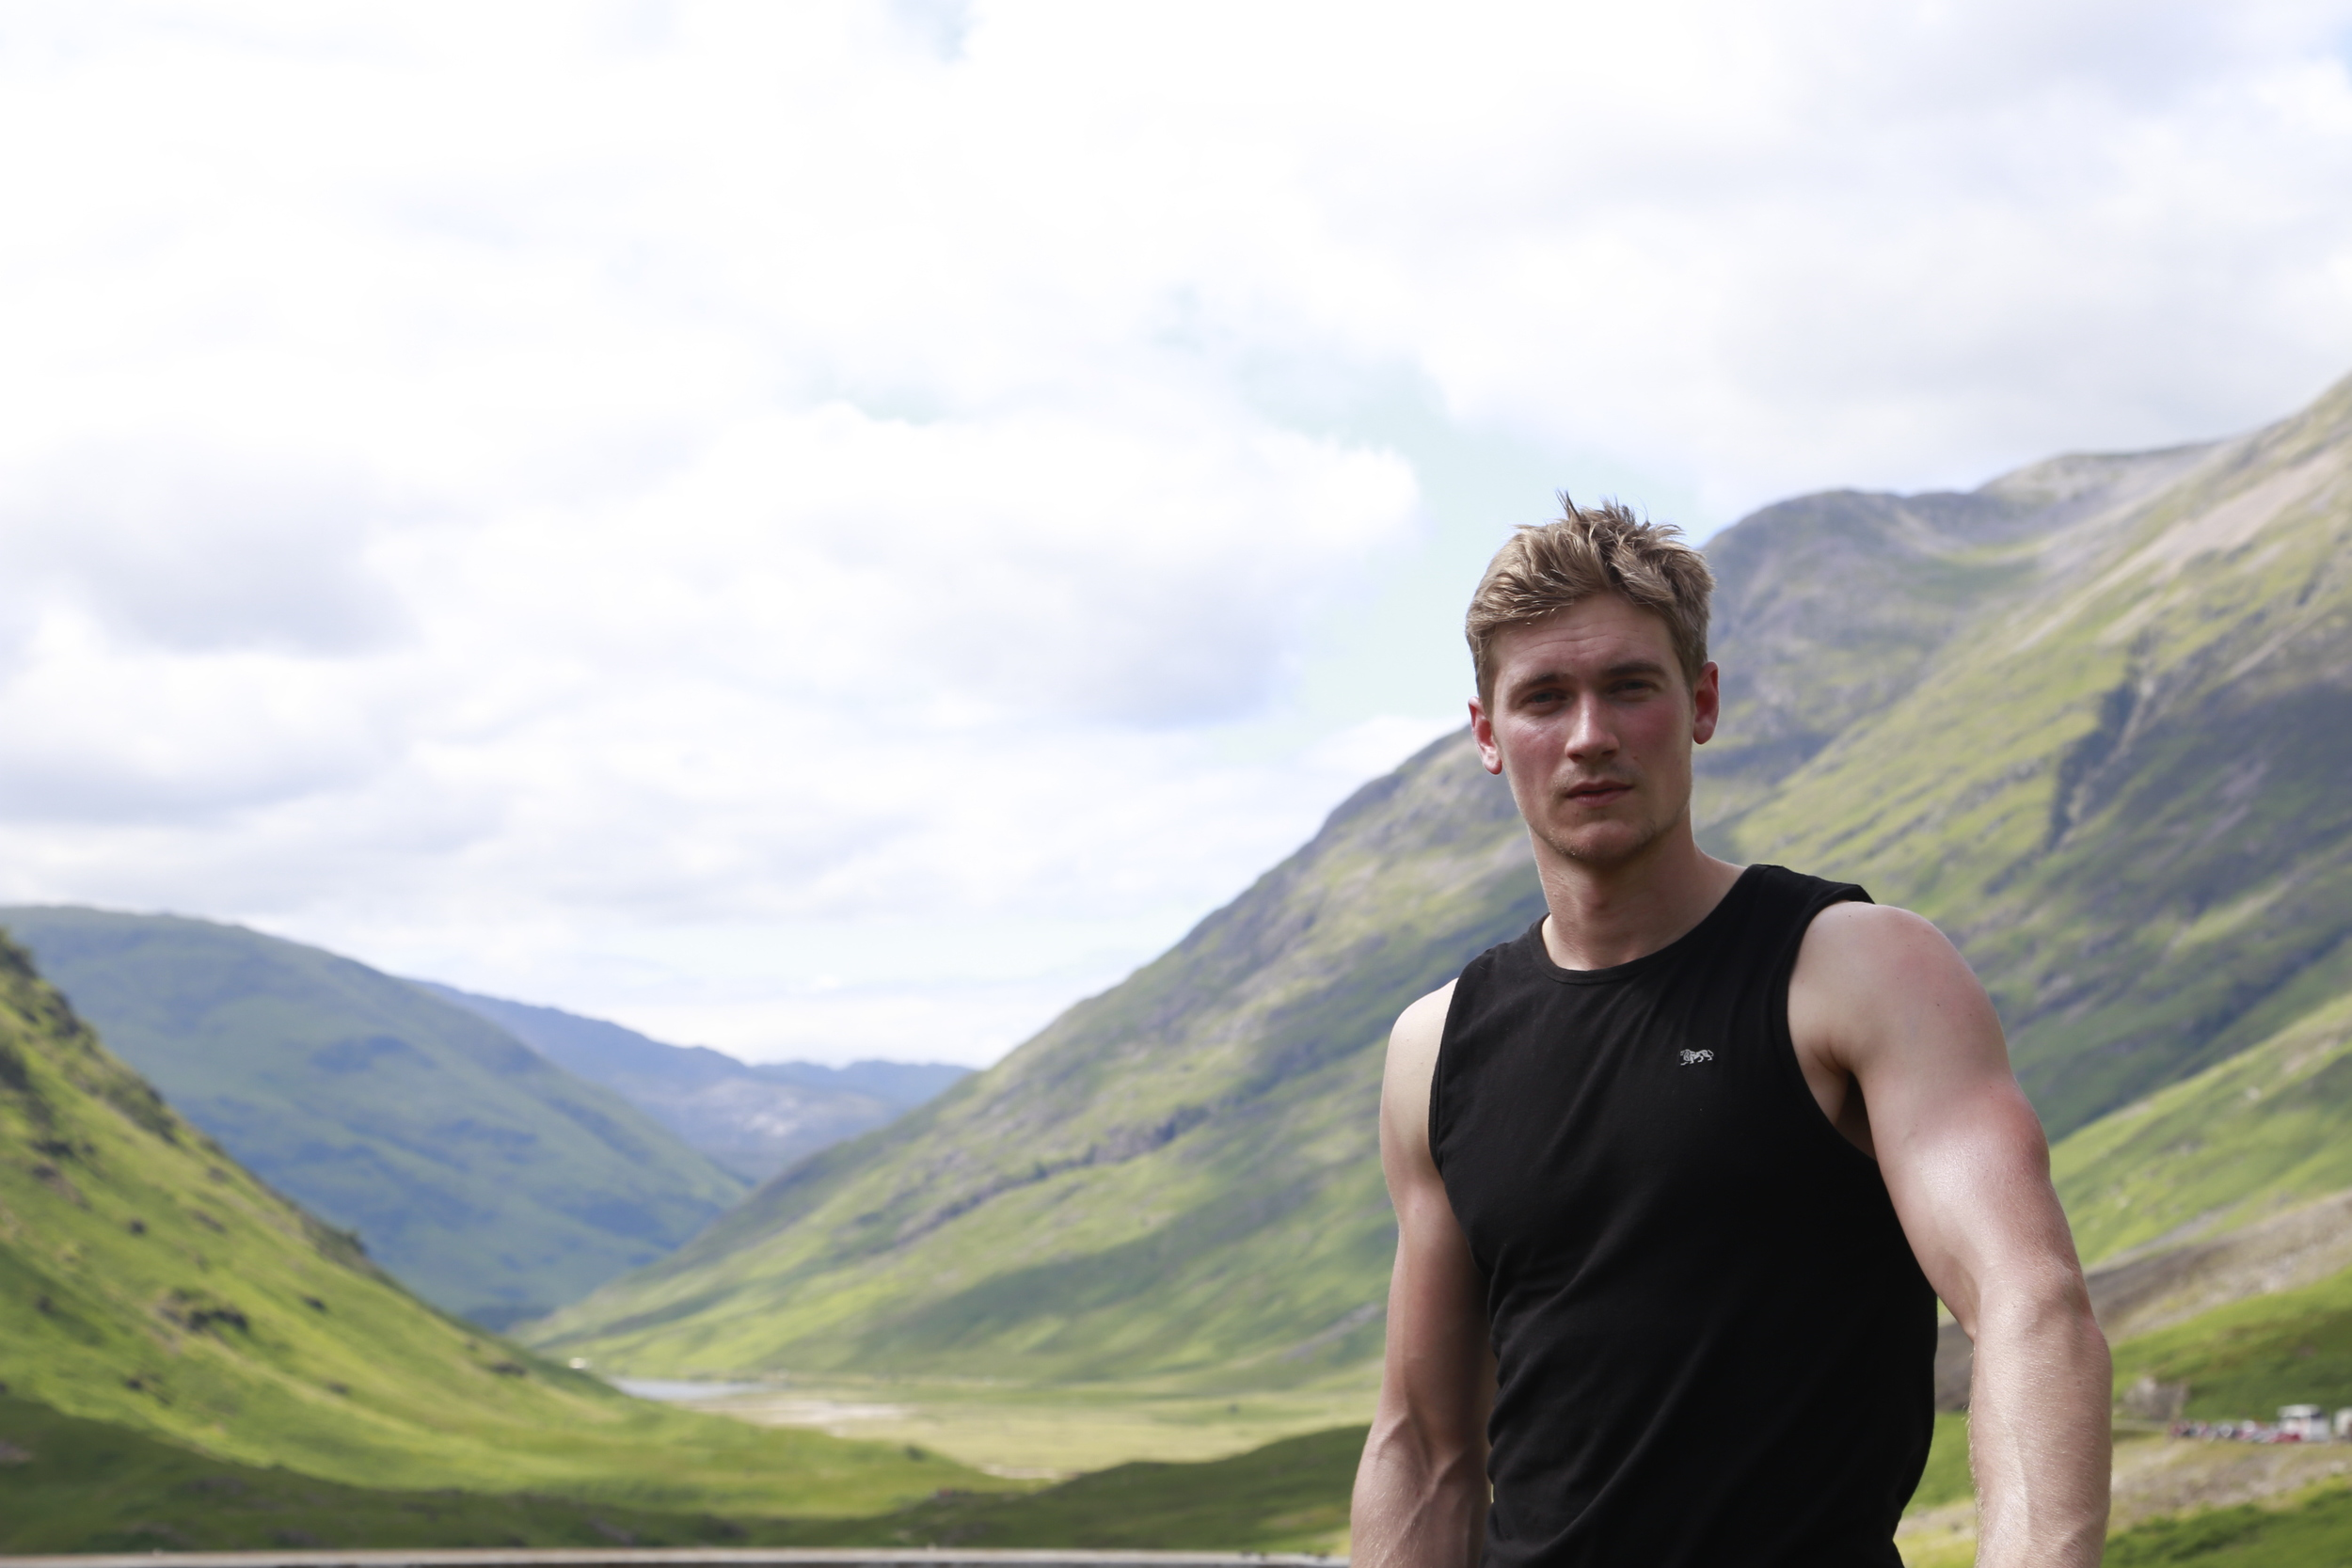 scotland, glen coe, photography, canon, canon 6d, portrait, landscape, dslr, photo, photos, go pro, video, photographer, fuji, leica, model